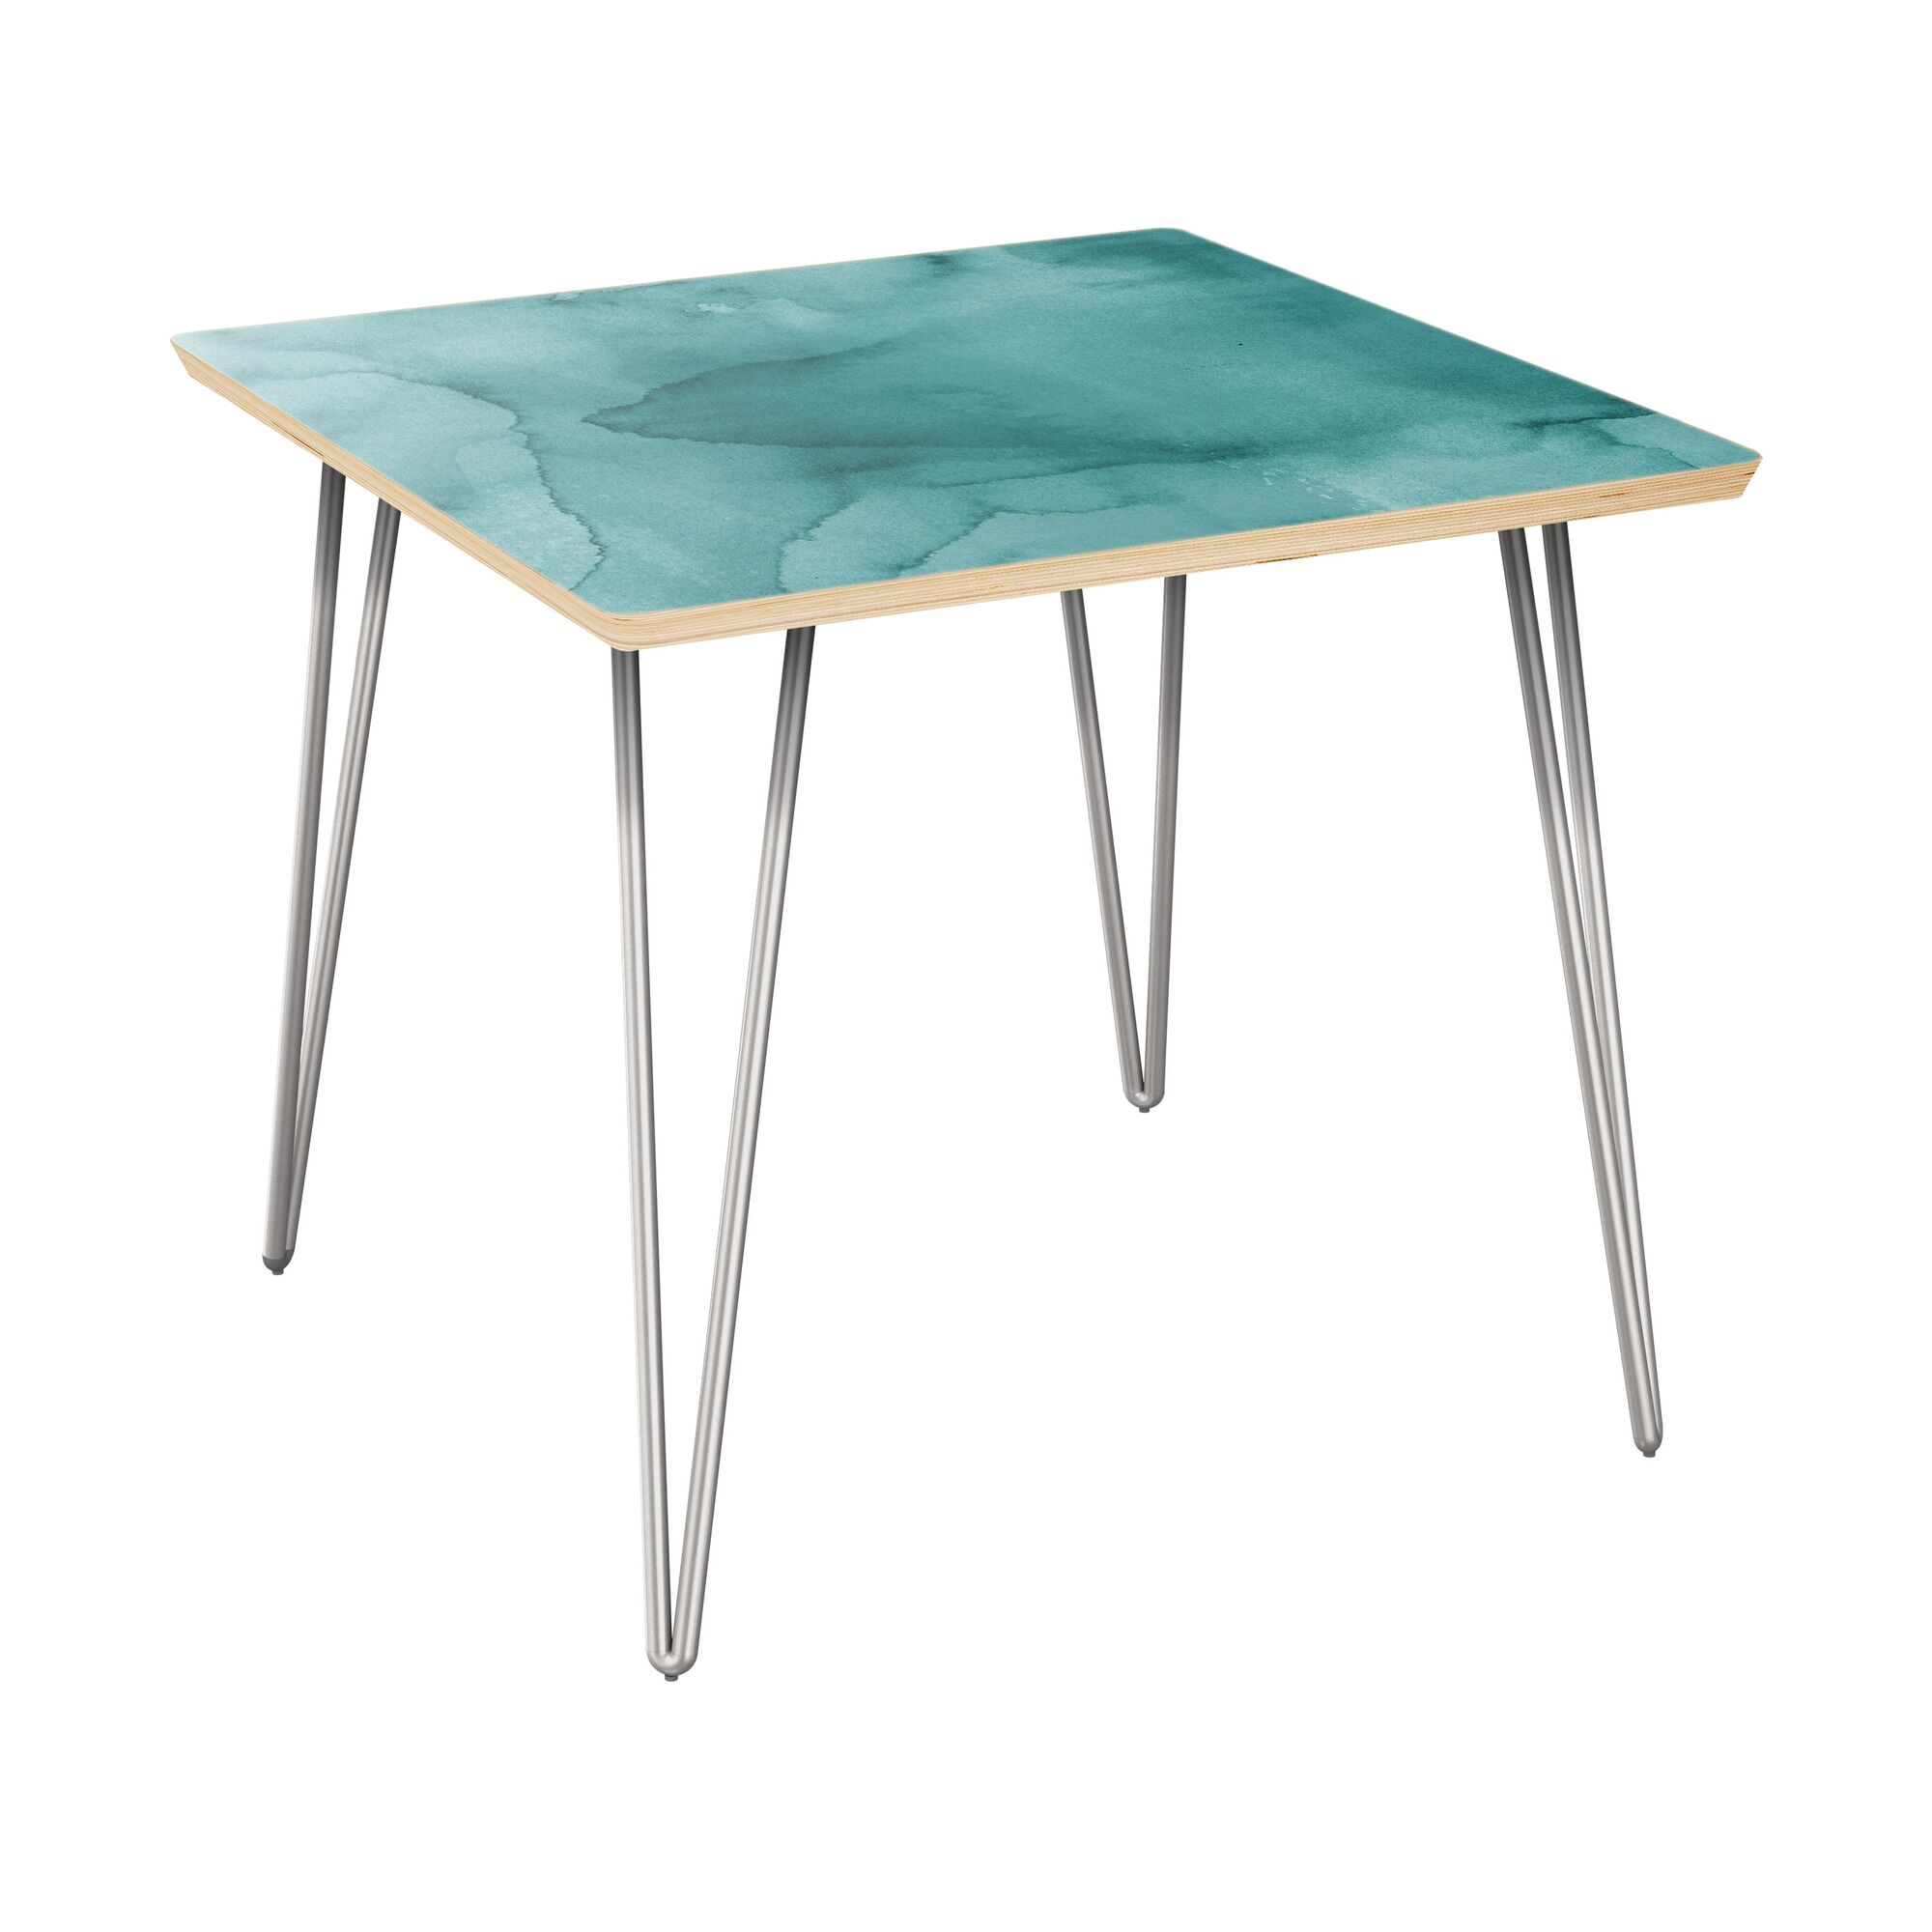 Ratner End Table Table Top Boarder Color: Natural, Table Base Color: Chrome, Table Top Color: Turquoise